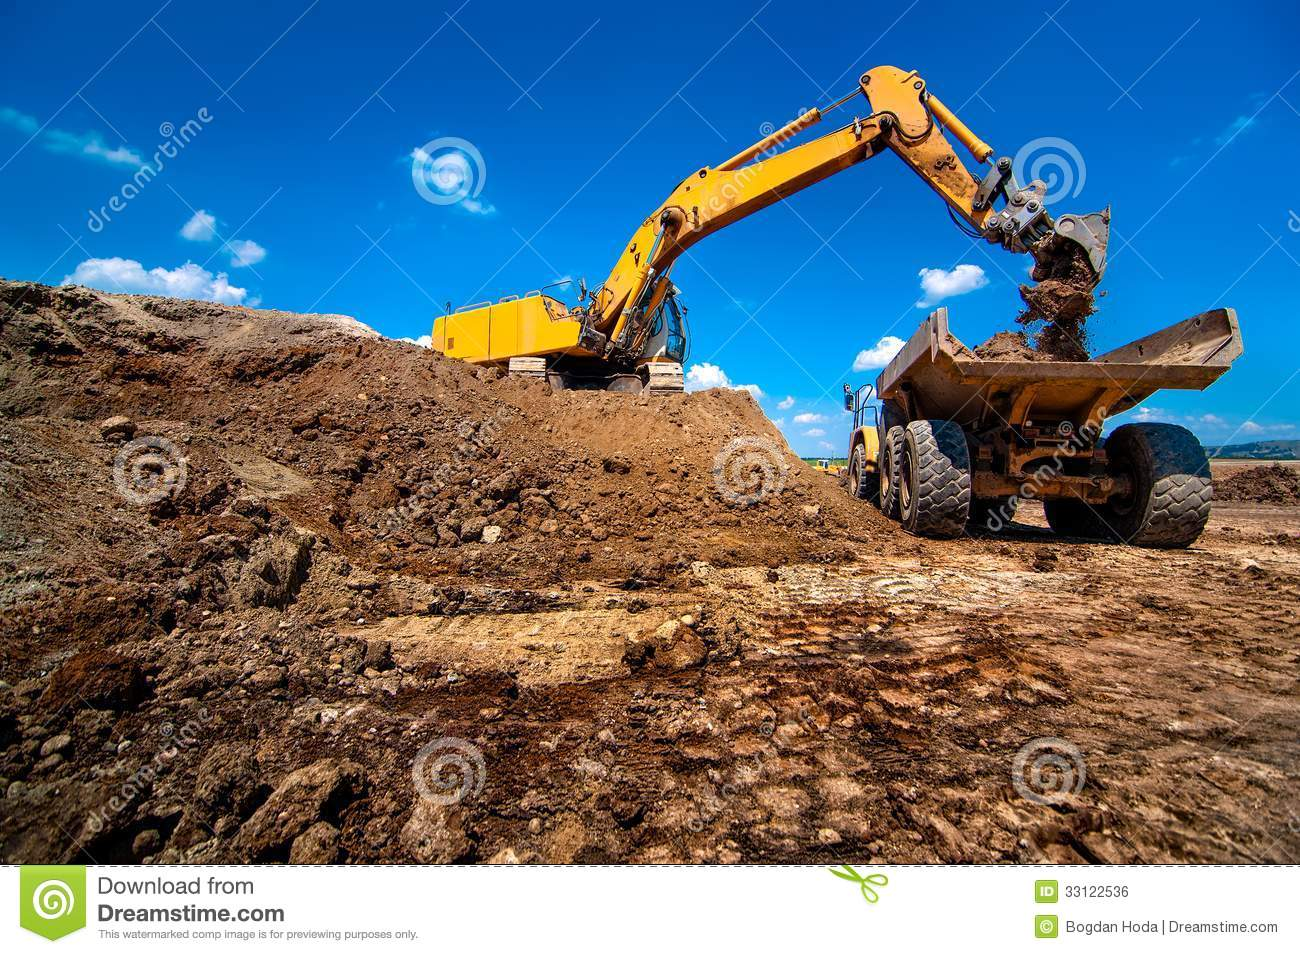 Construction Site Soil : Industrial excavator loading soil material royalty free